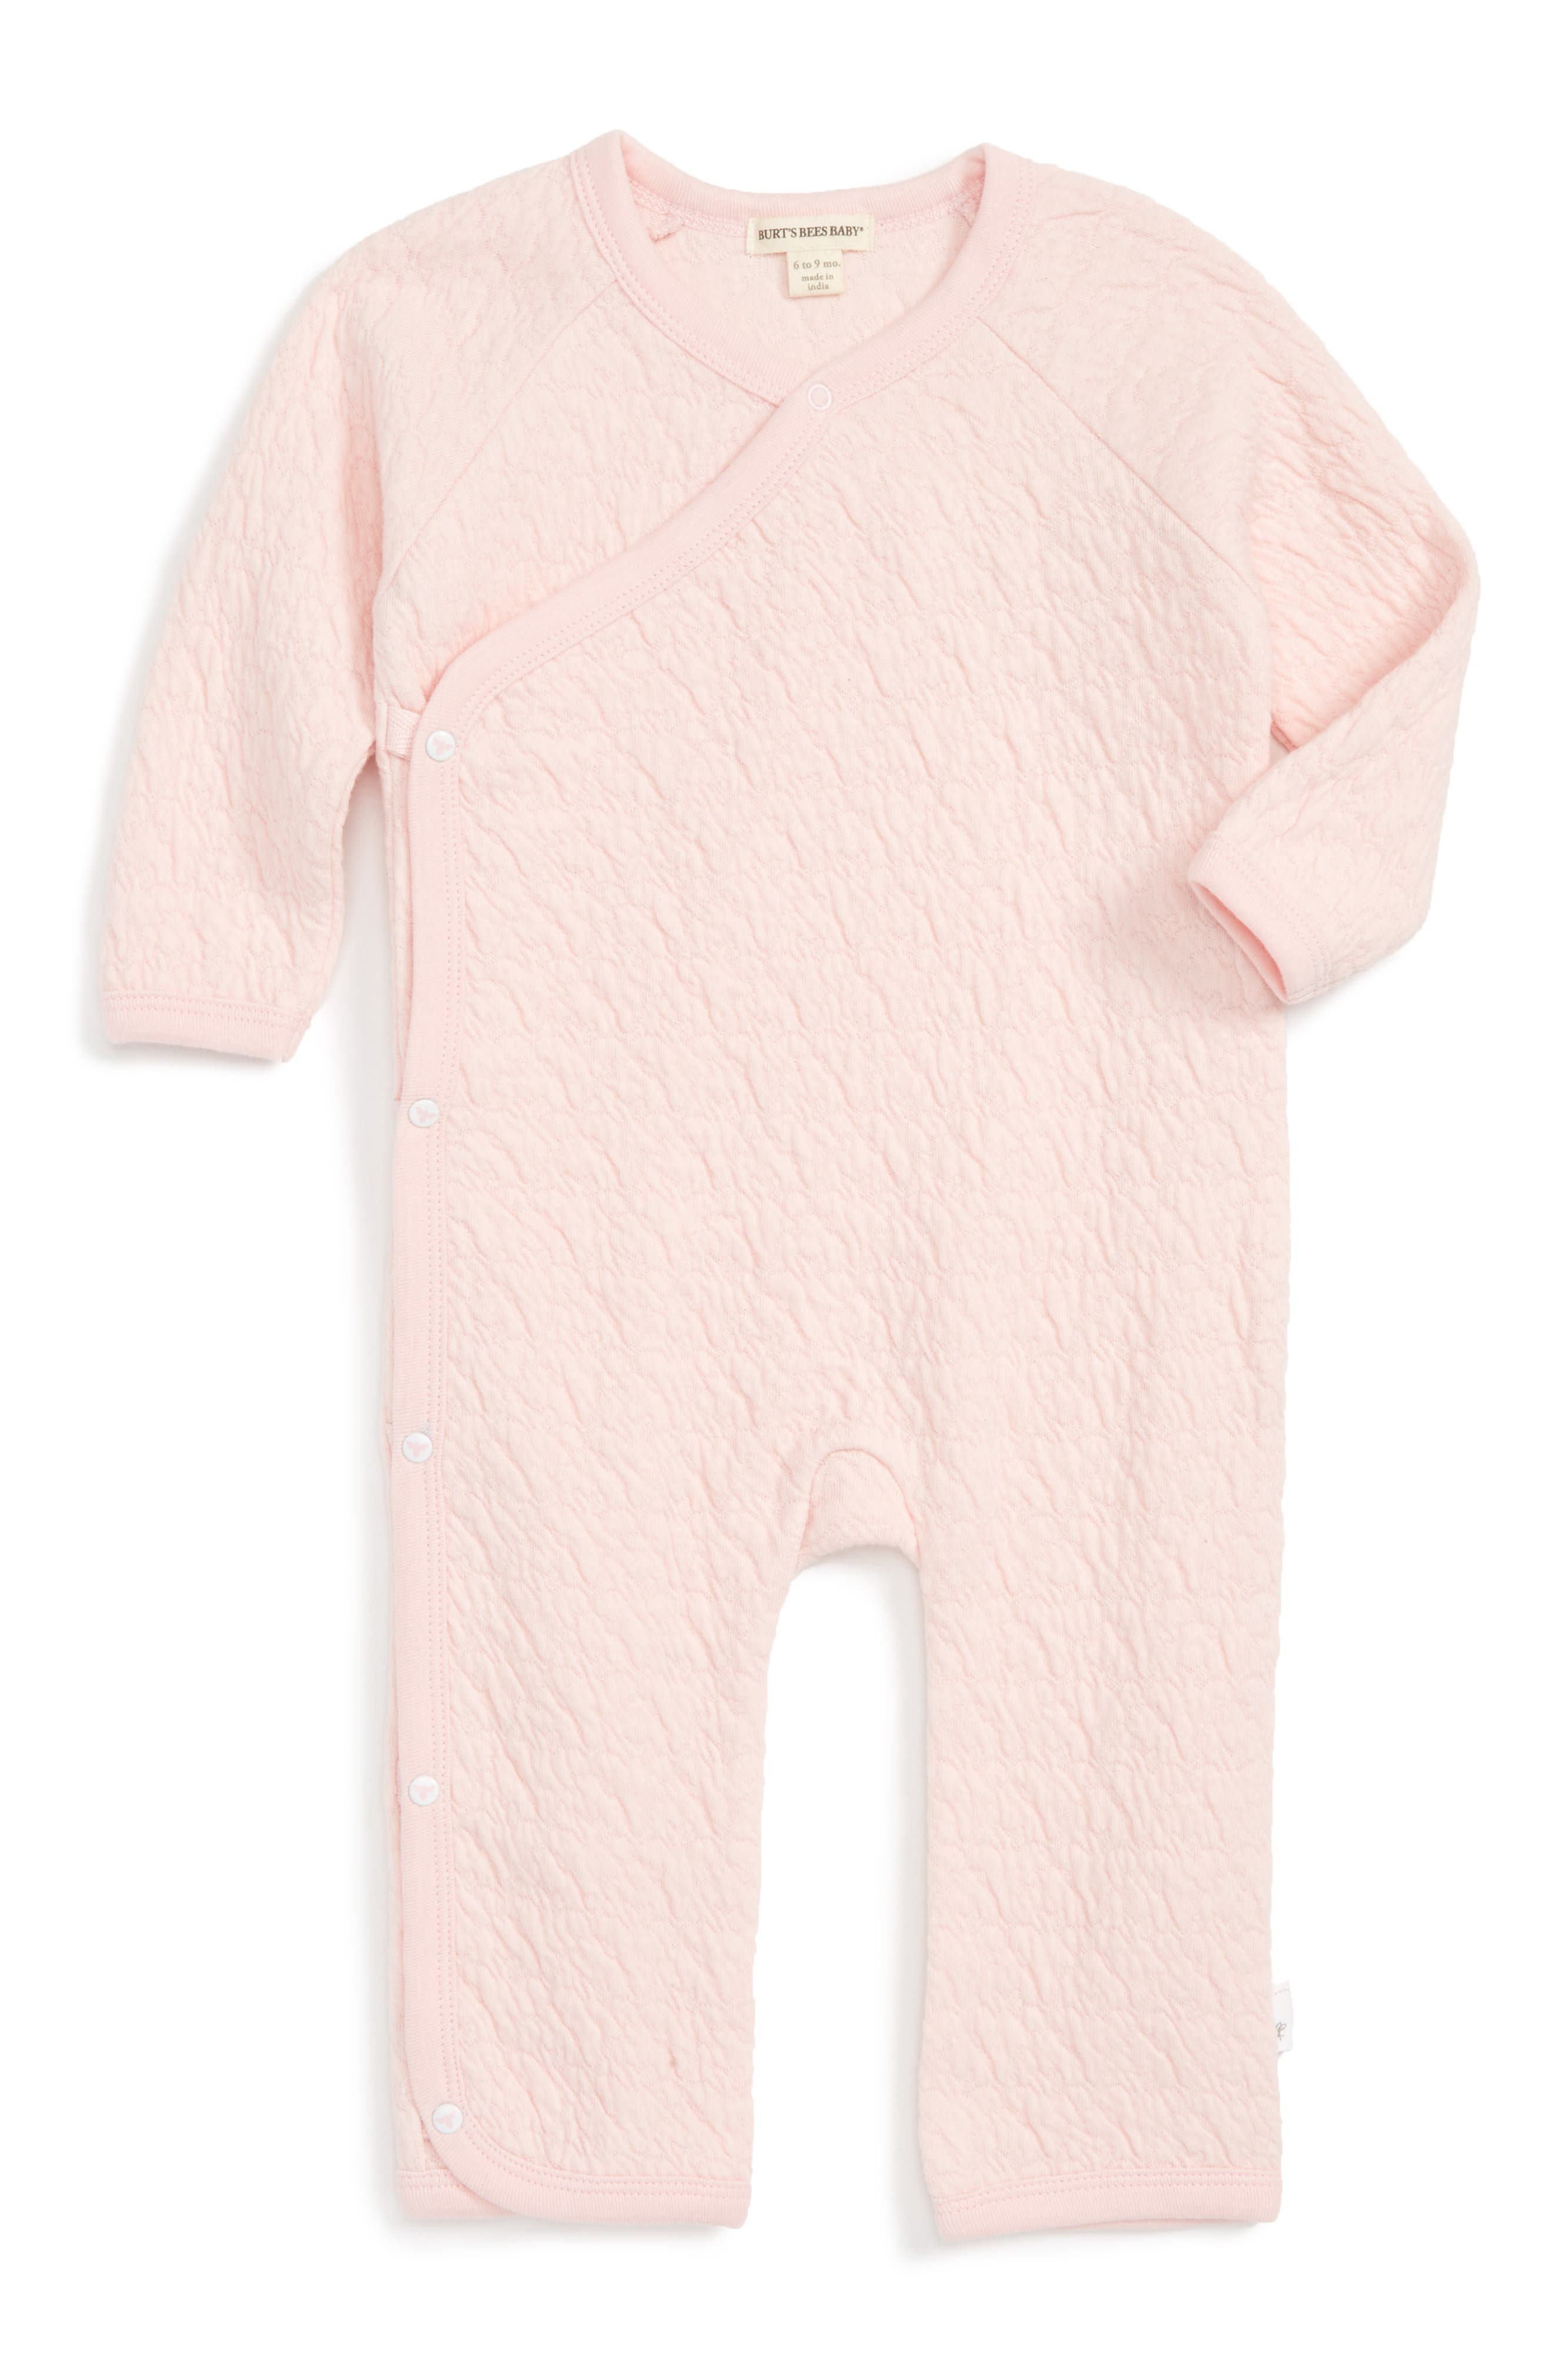 BURTS BEES BABY Quilted Organic Cotton Romper